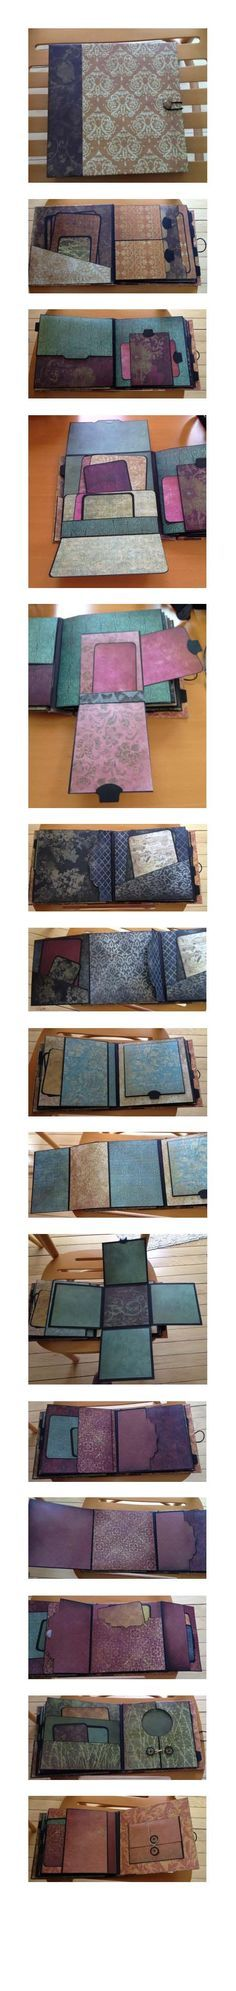 """8 x 8 mini album - inspired by many but especially Kona Raven; using the Paper Studio """"Tattered and Worn"""" papers"""